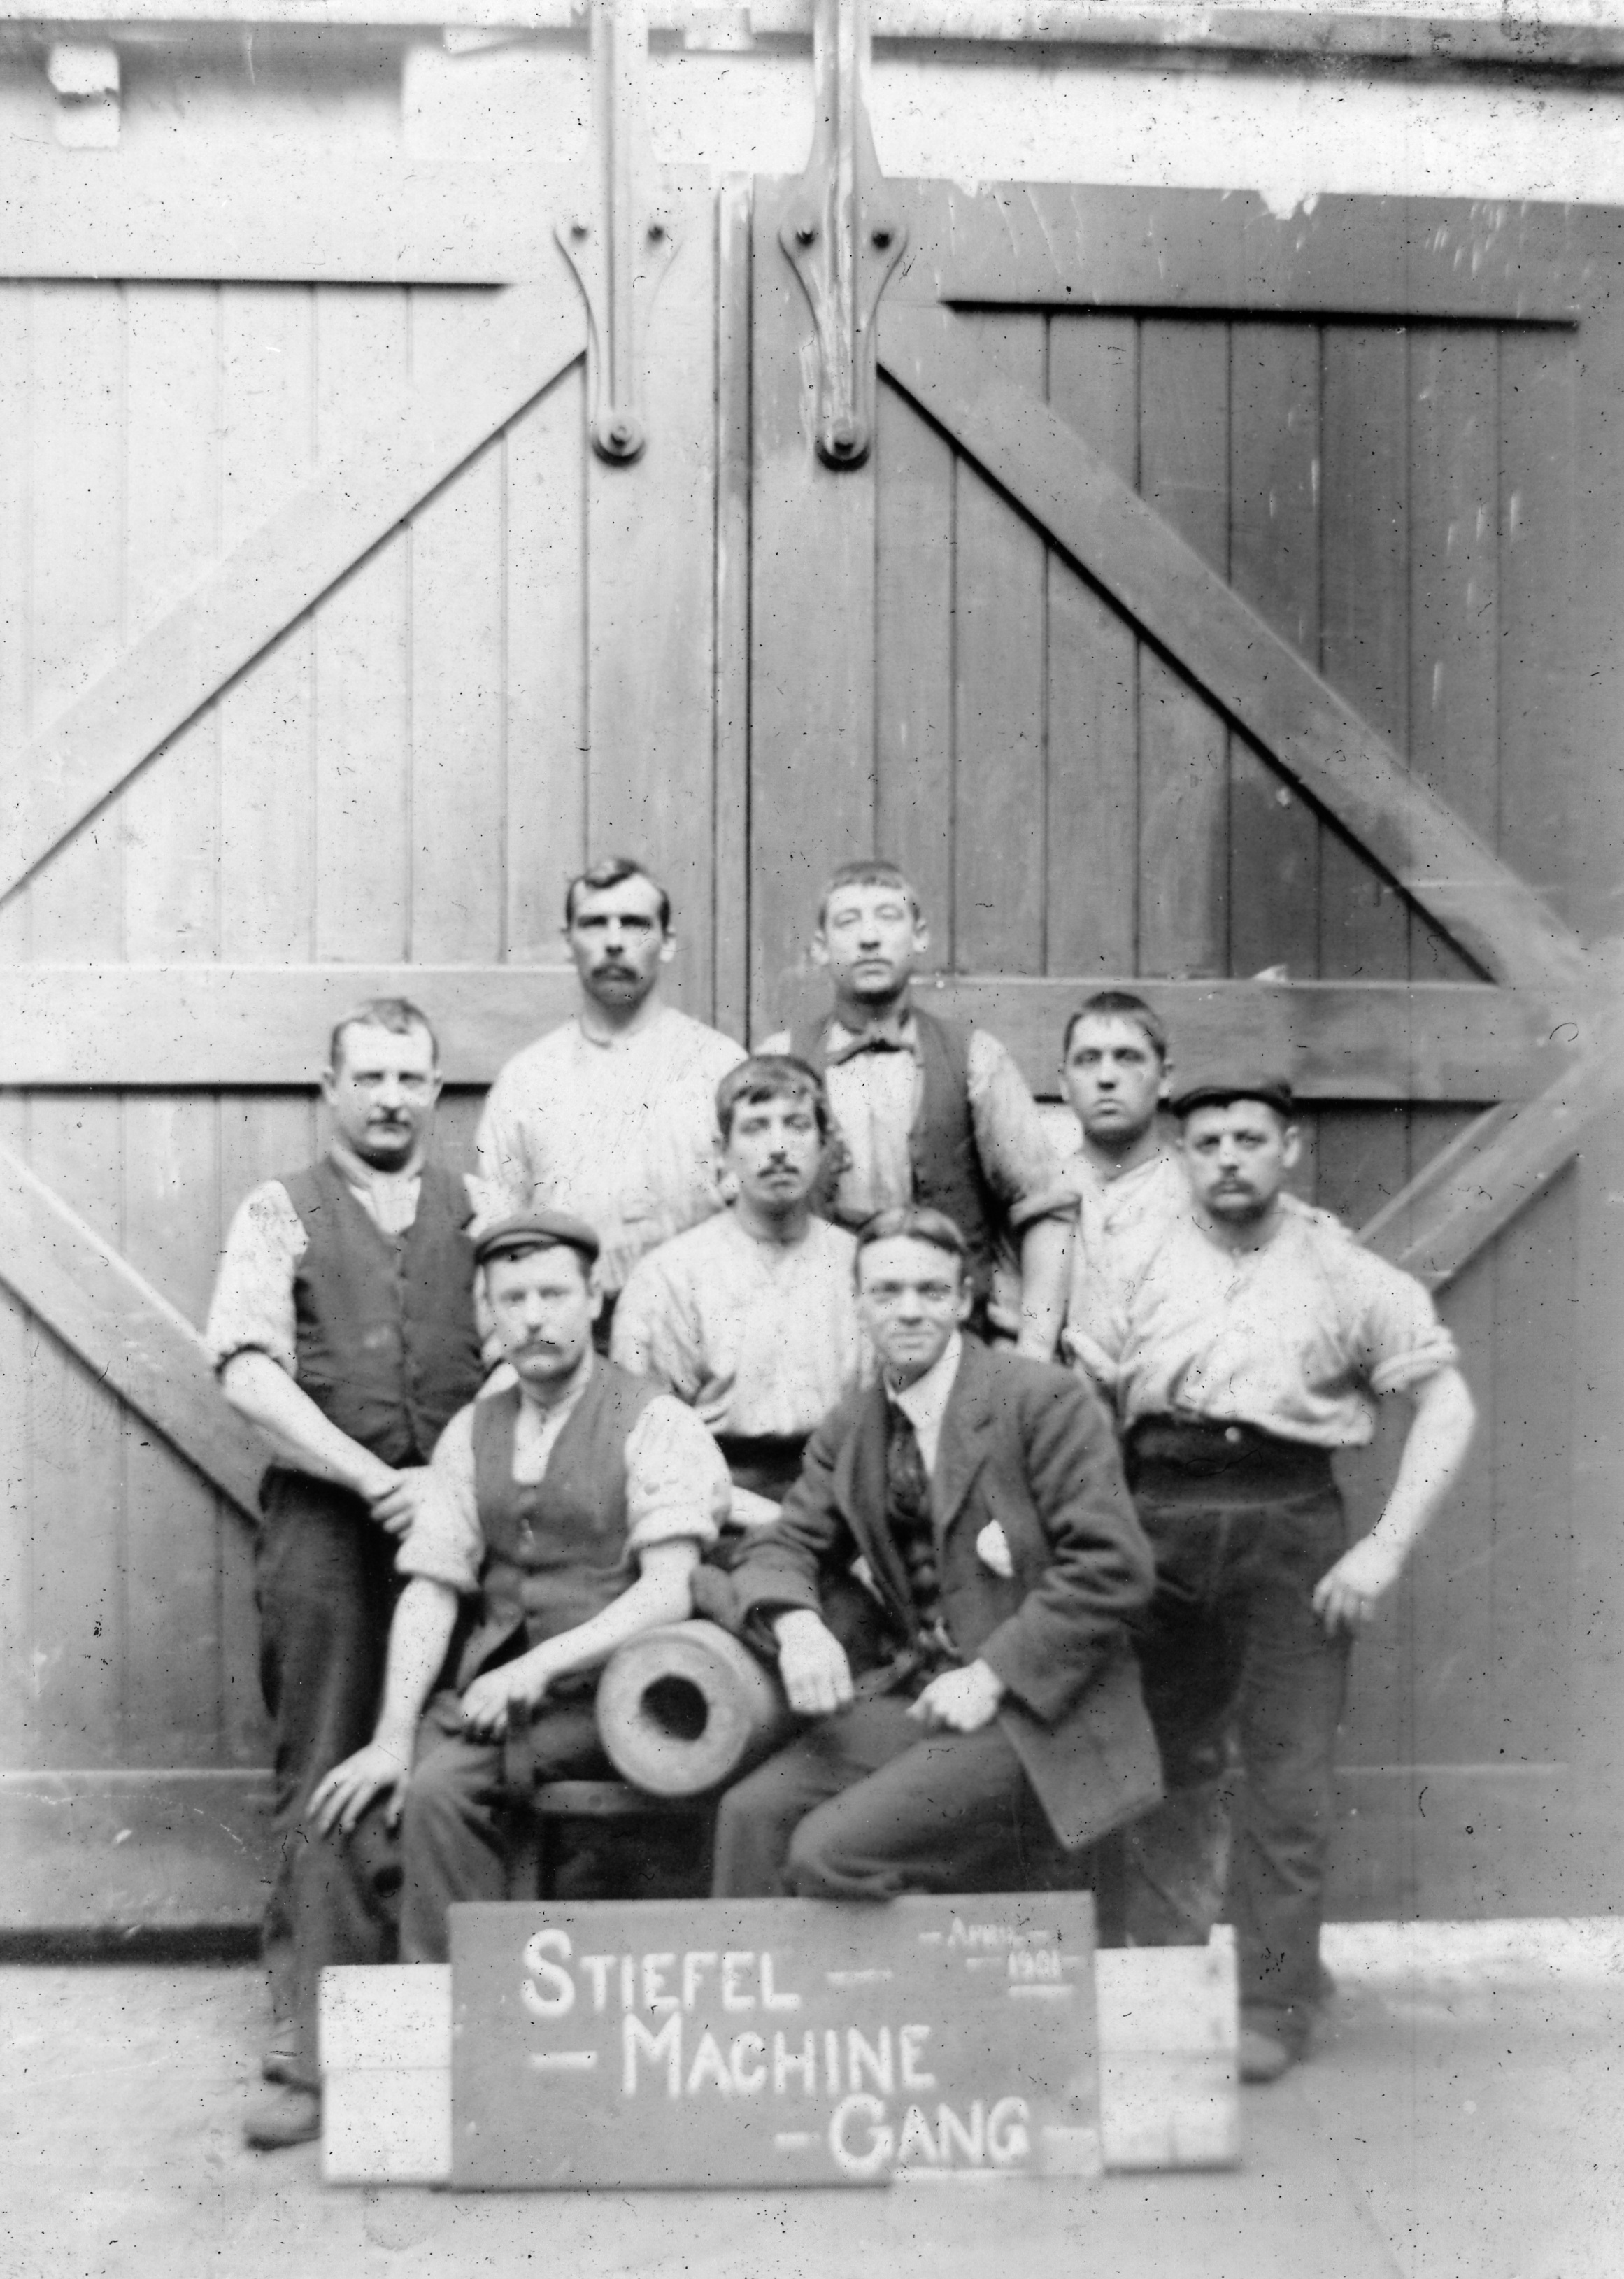 No.1 - The Stiefel Gang